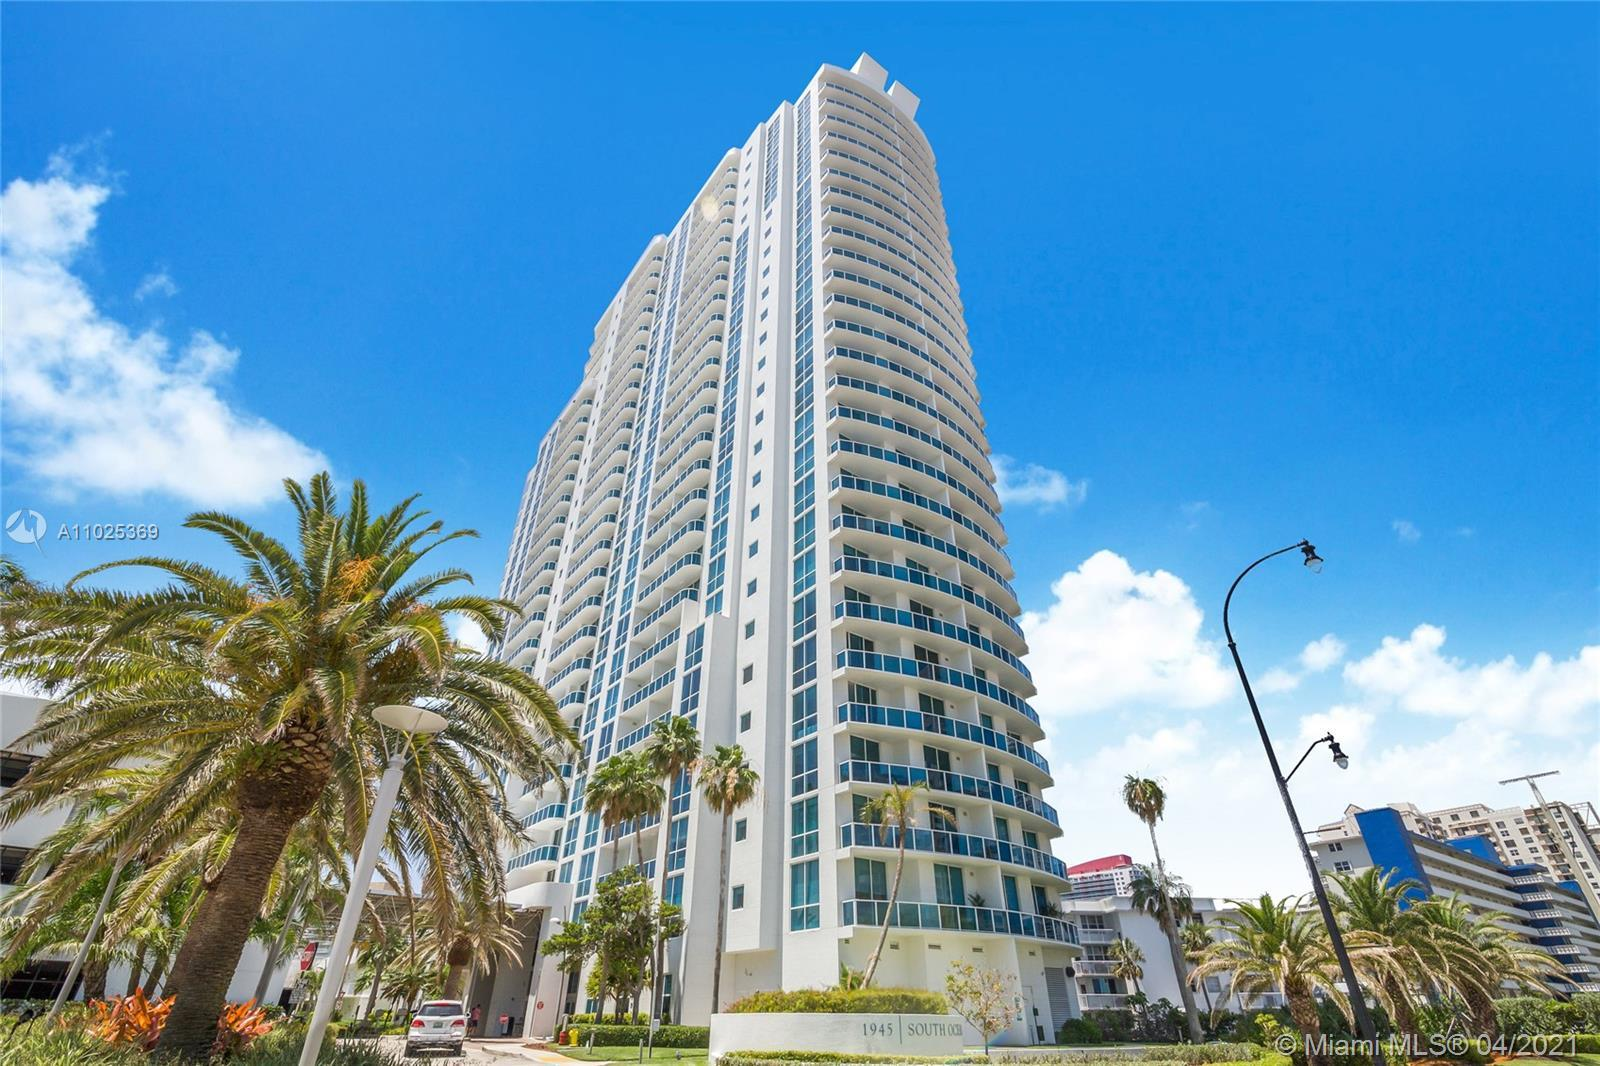 The city of Hallandale Beach offers unique condo lifestyle with modern buildings, a lot of amenities